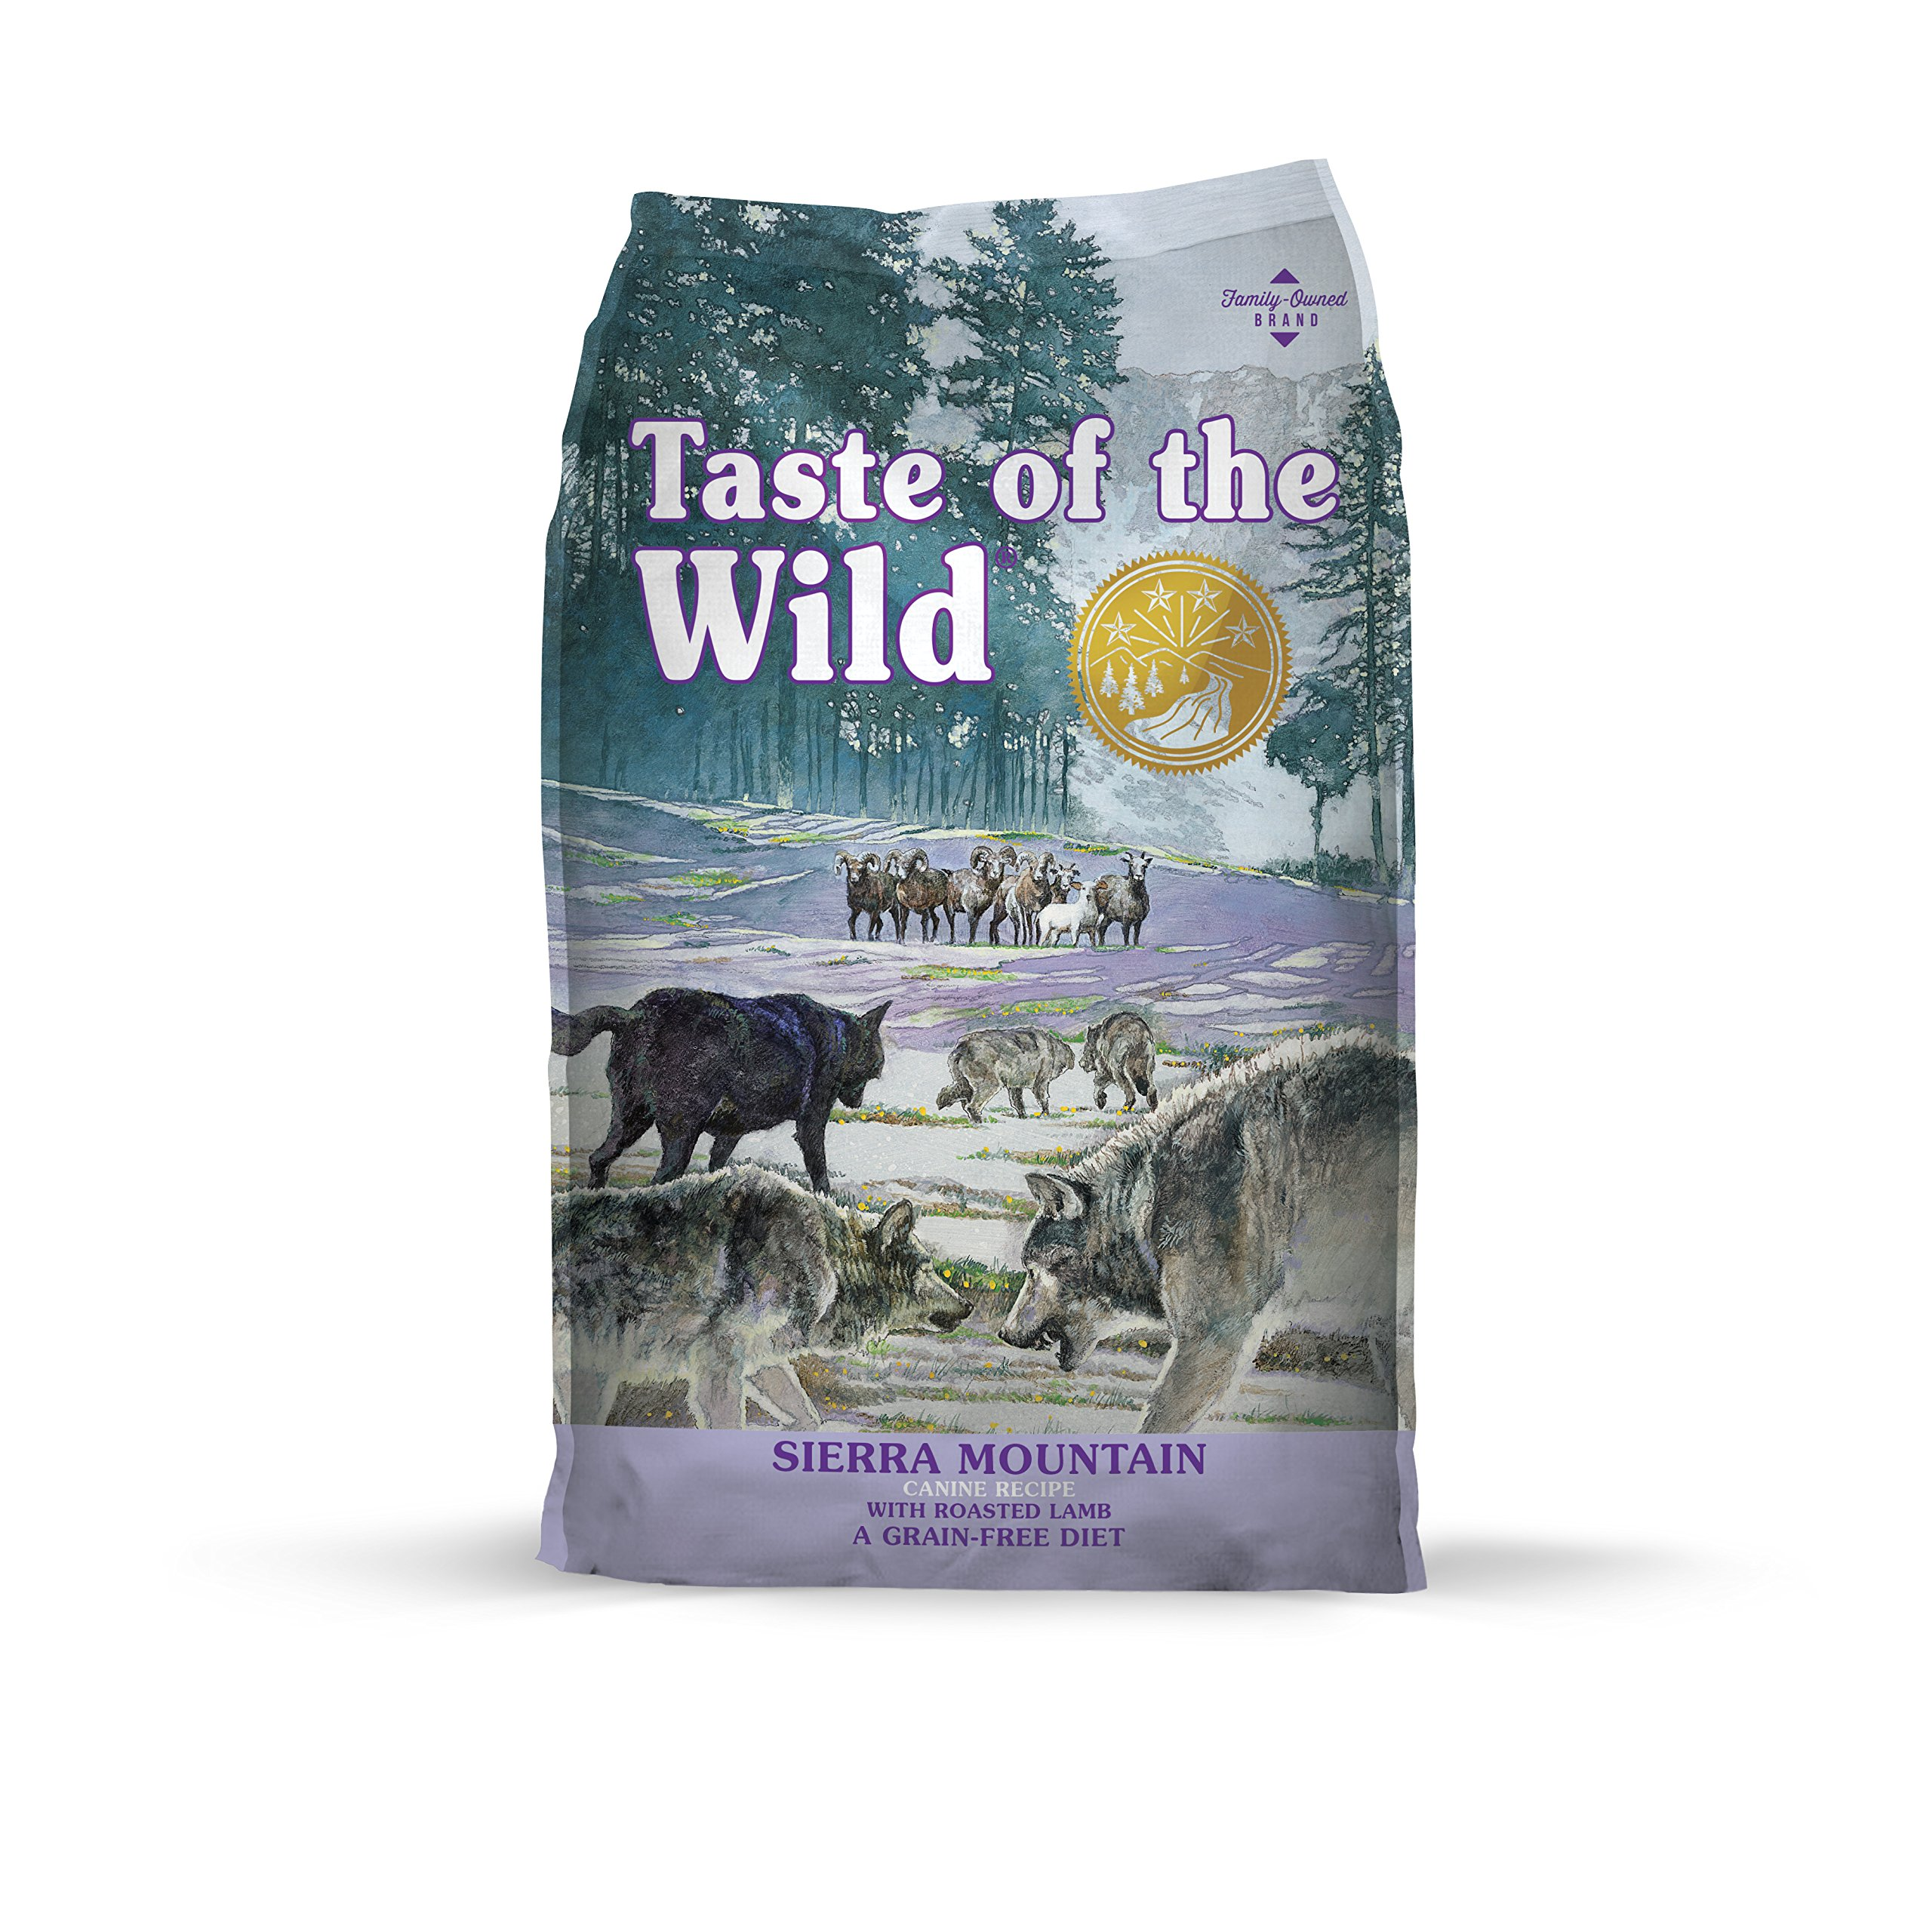 Taste of the Wild Grain Free High Protein Real Meat Recipe Sierra Mountain Premium Dry Dog Food, 28 lb by Taste of the Wild (Image #1)